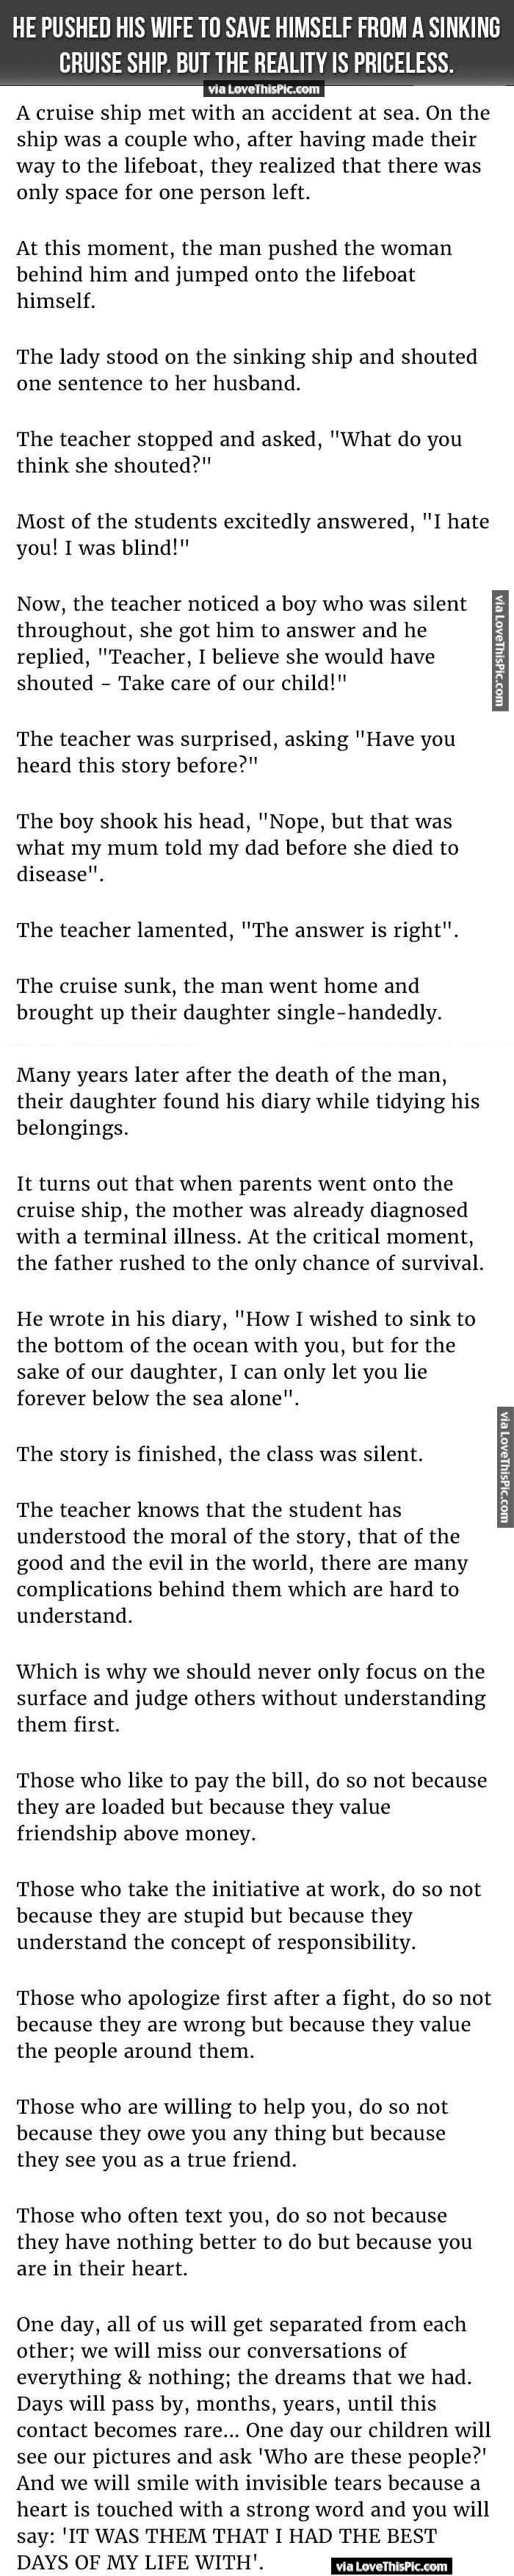 A MAN PUSHES HIS WIFE OUT OF THE WAY TO GET IN A LIFEBOAT WHILE THE SHIP IS SINKING. READ TO FIND OUT WHY HE DID IT.